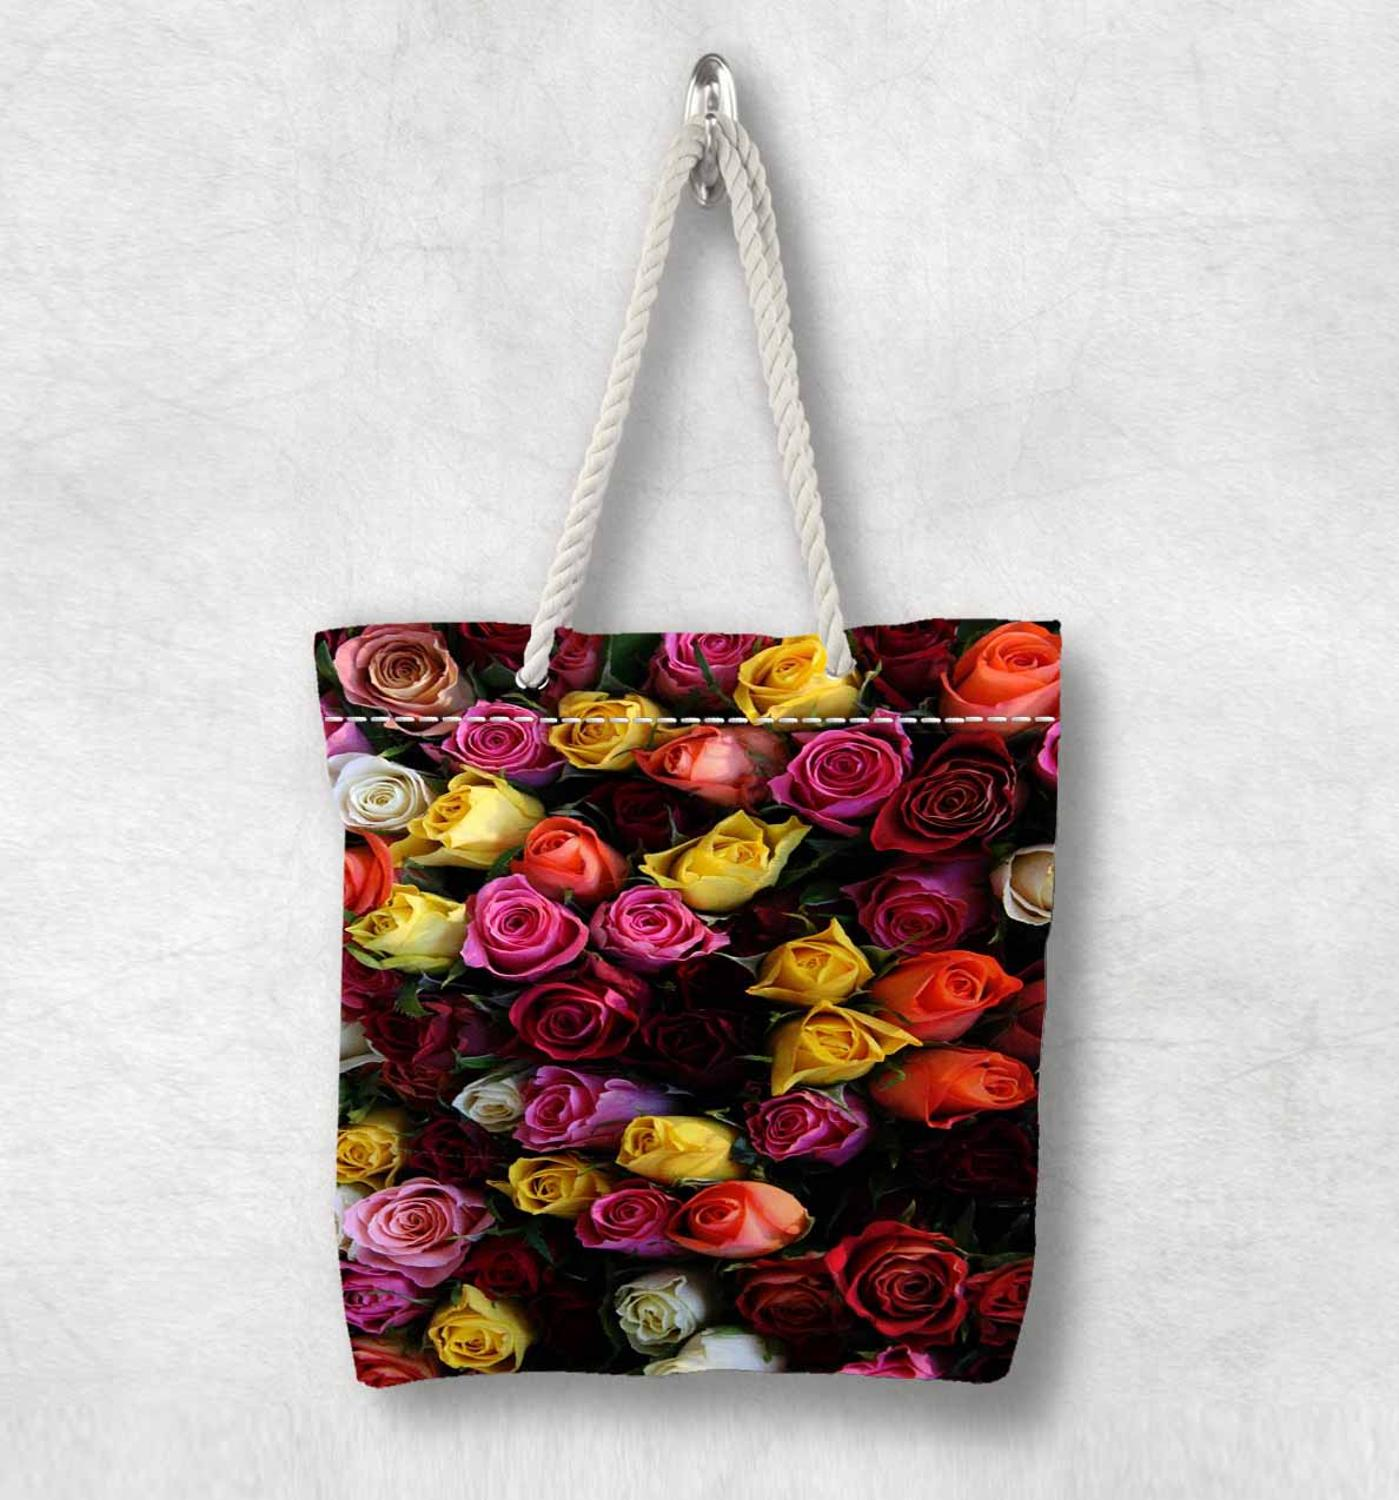 Else Orange Yellow Pink Roses Flowers New Fashion White Rope Handle Canvas Bag Cotton Canvas Zippered Tote Bag Shoulder Bag